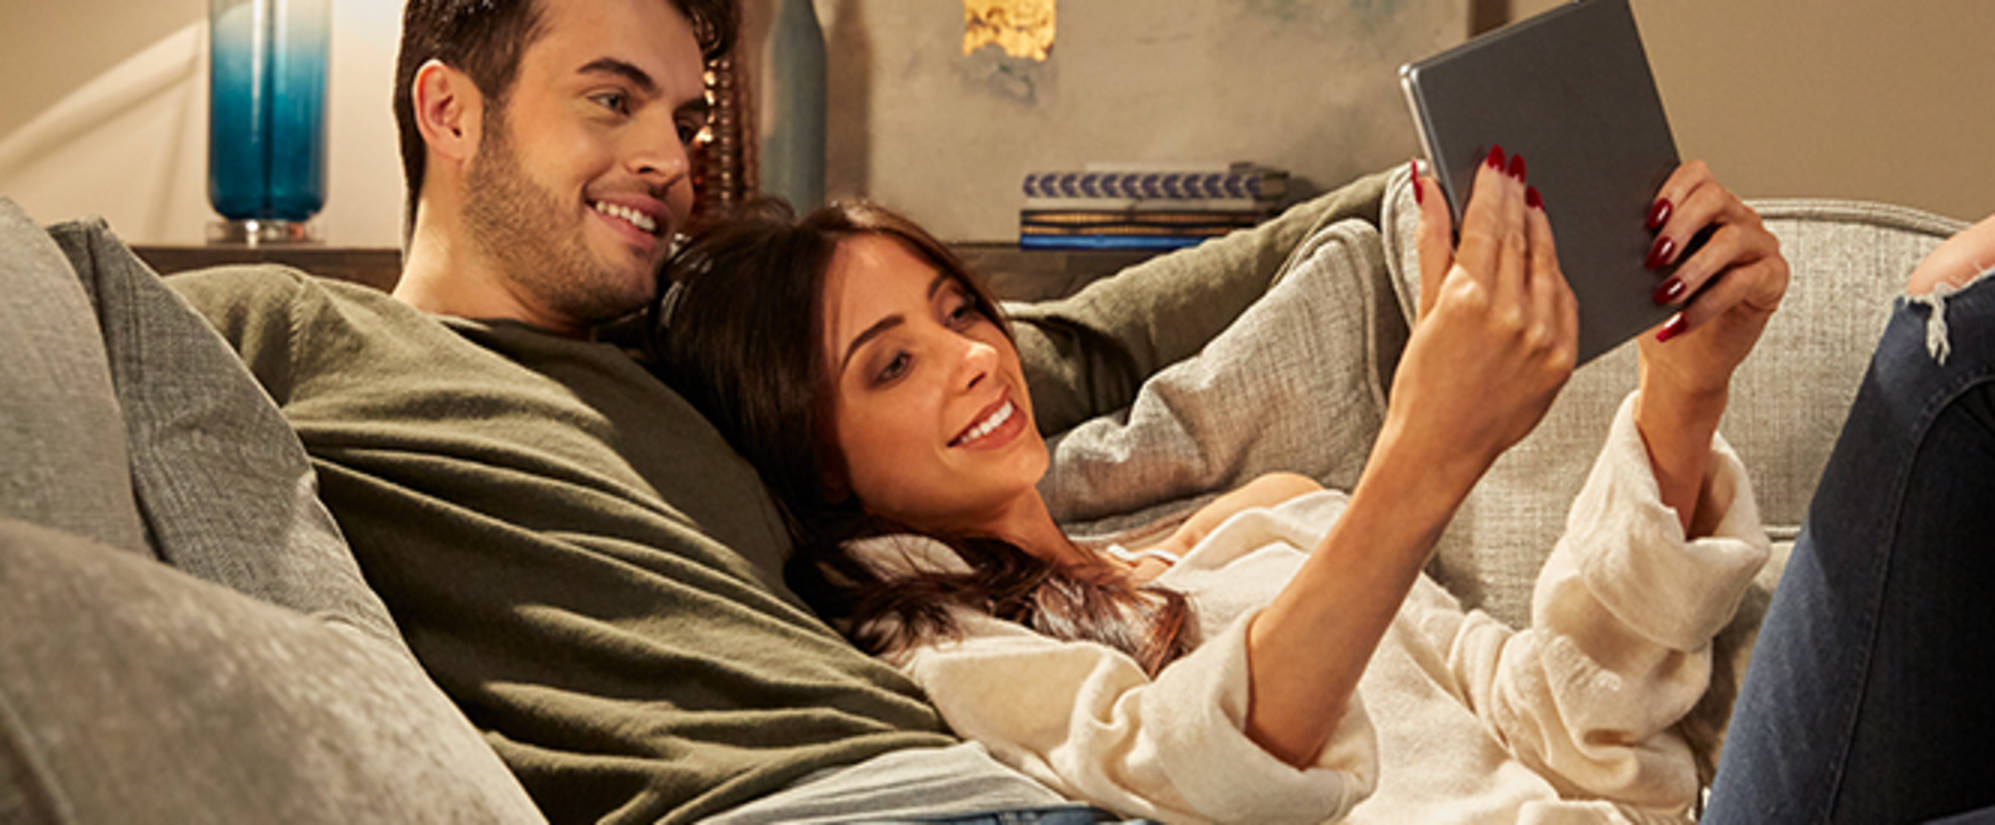 Couple relaxing of sofa looking at tablet